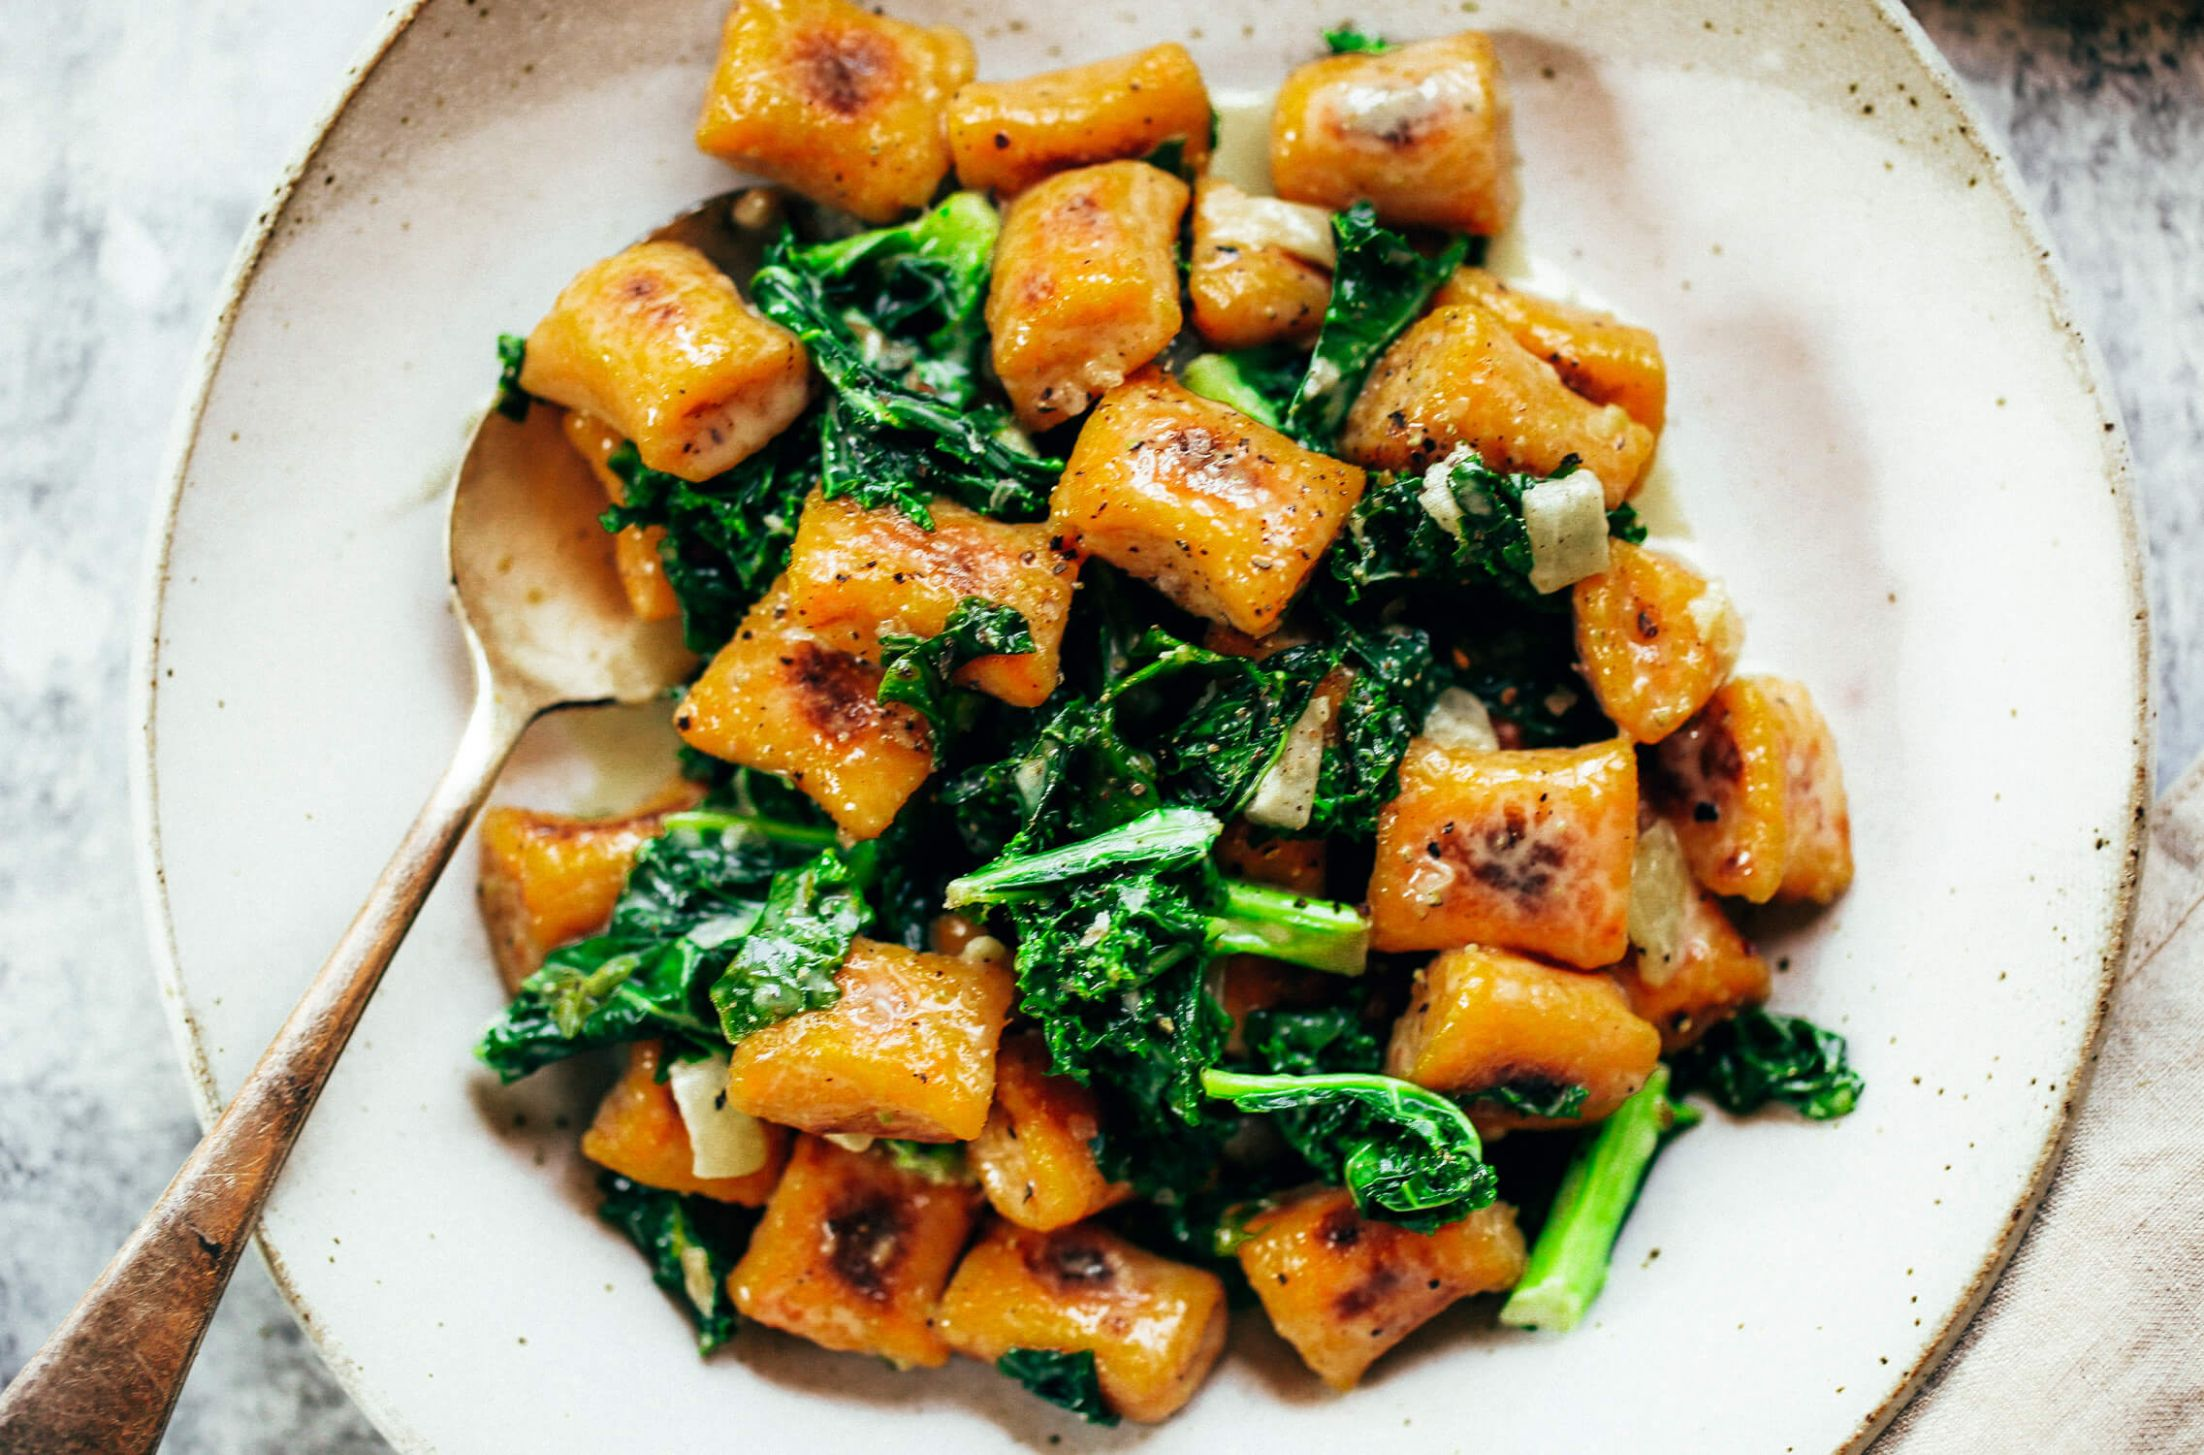 Paleo Sweet Potato Gnocchi With Kale - Recipes Using Potato Gnocchi